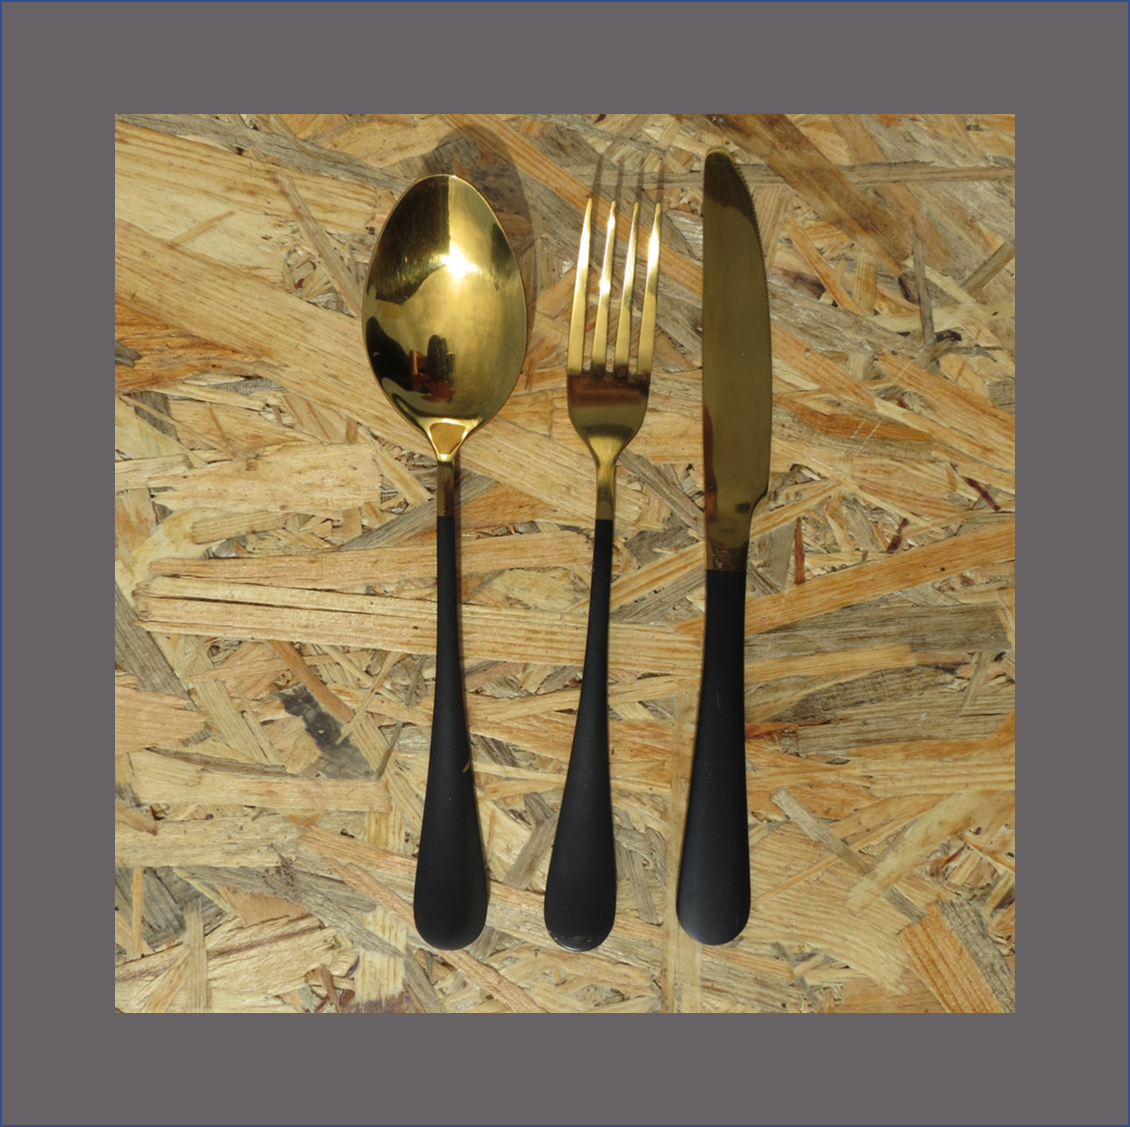 gold-and-black-cutlery